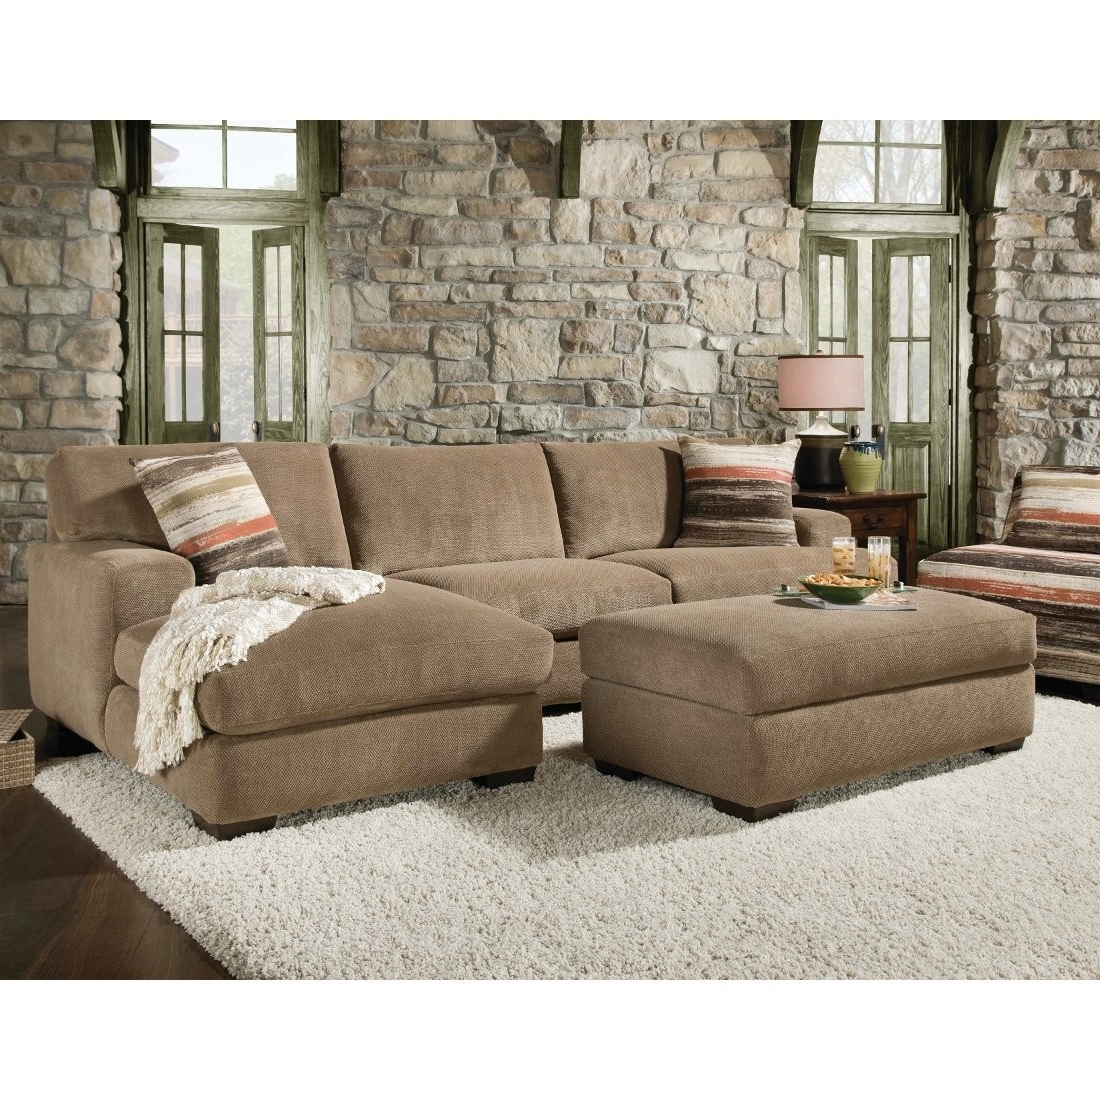 Homesfeed Regarding Famous 2 Piece Sectionals With Chaise (View 10 of 15)